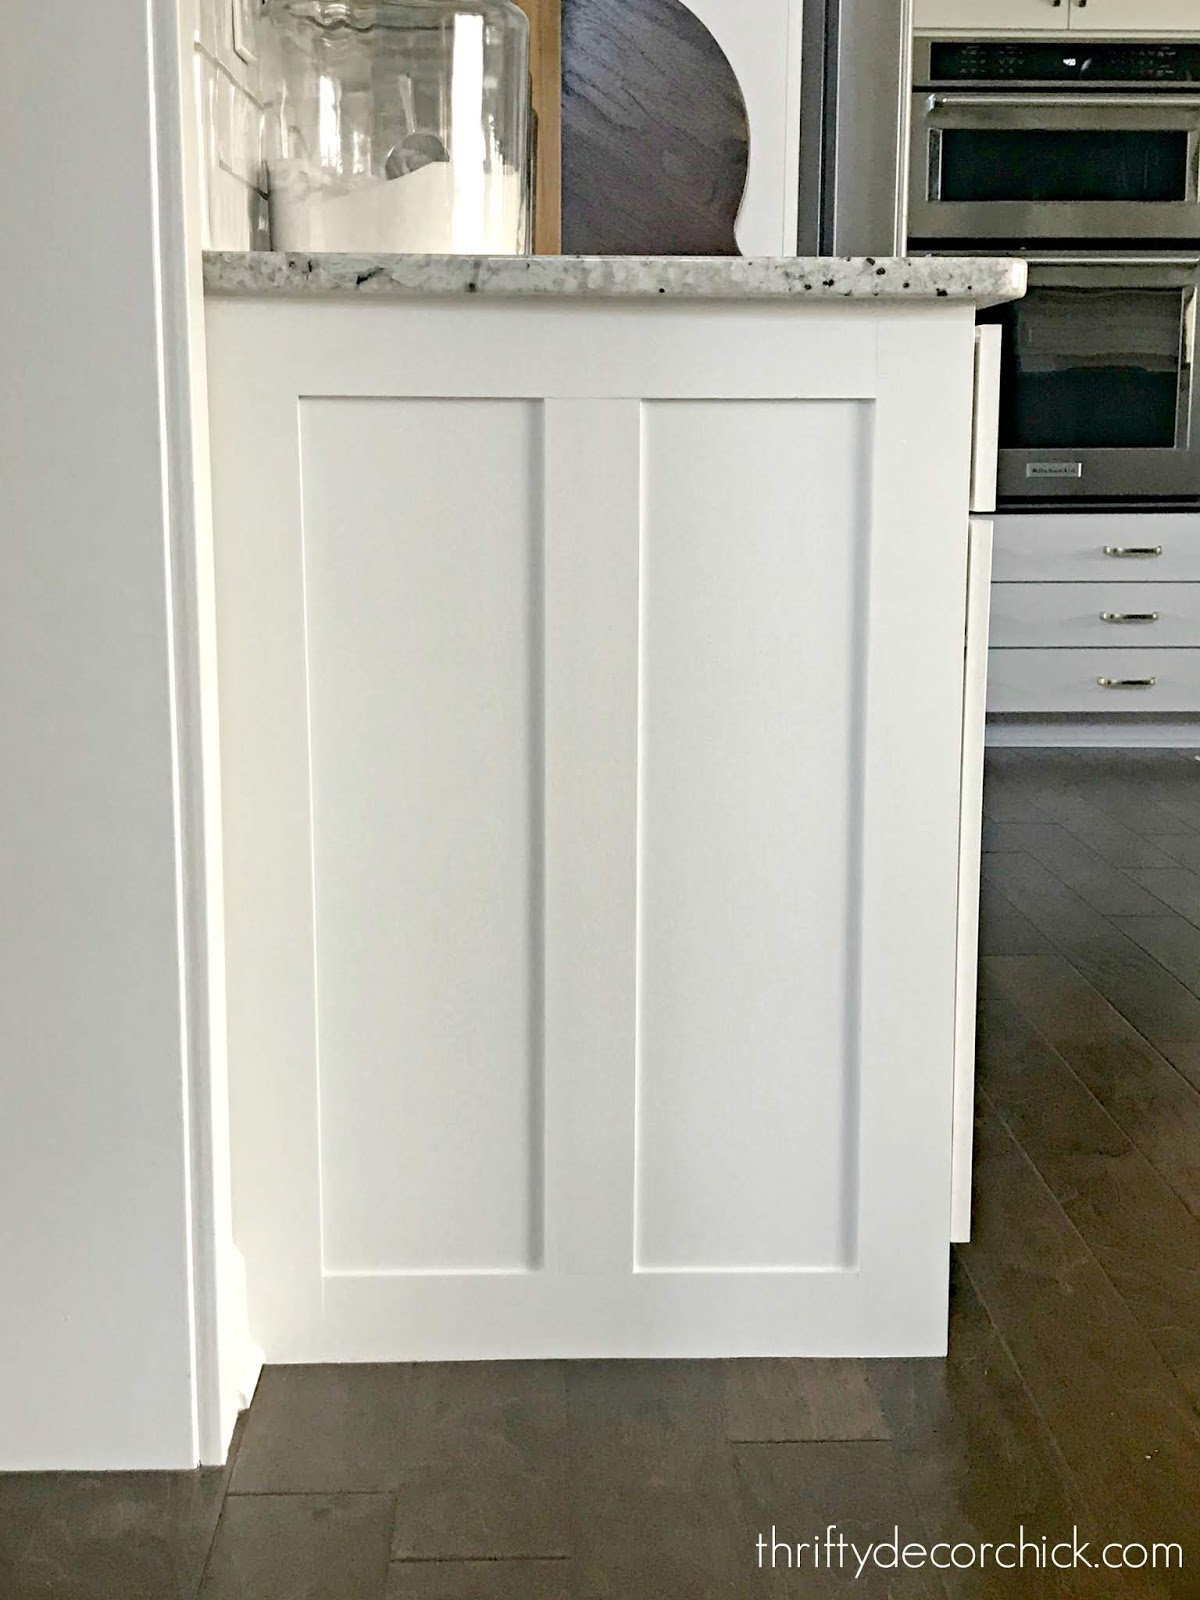 Upgrading the ends of builder grade cabinets with a custom design